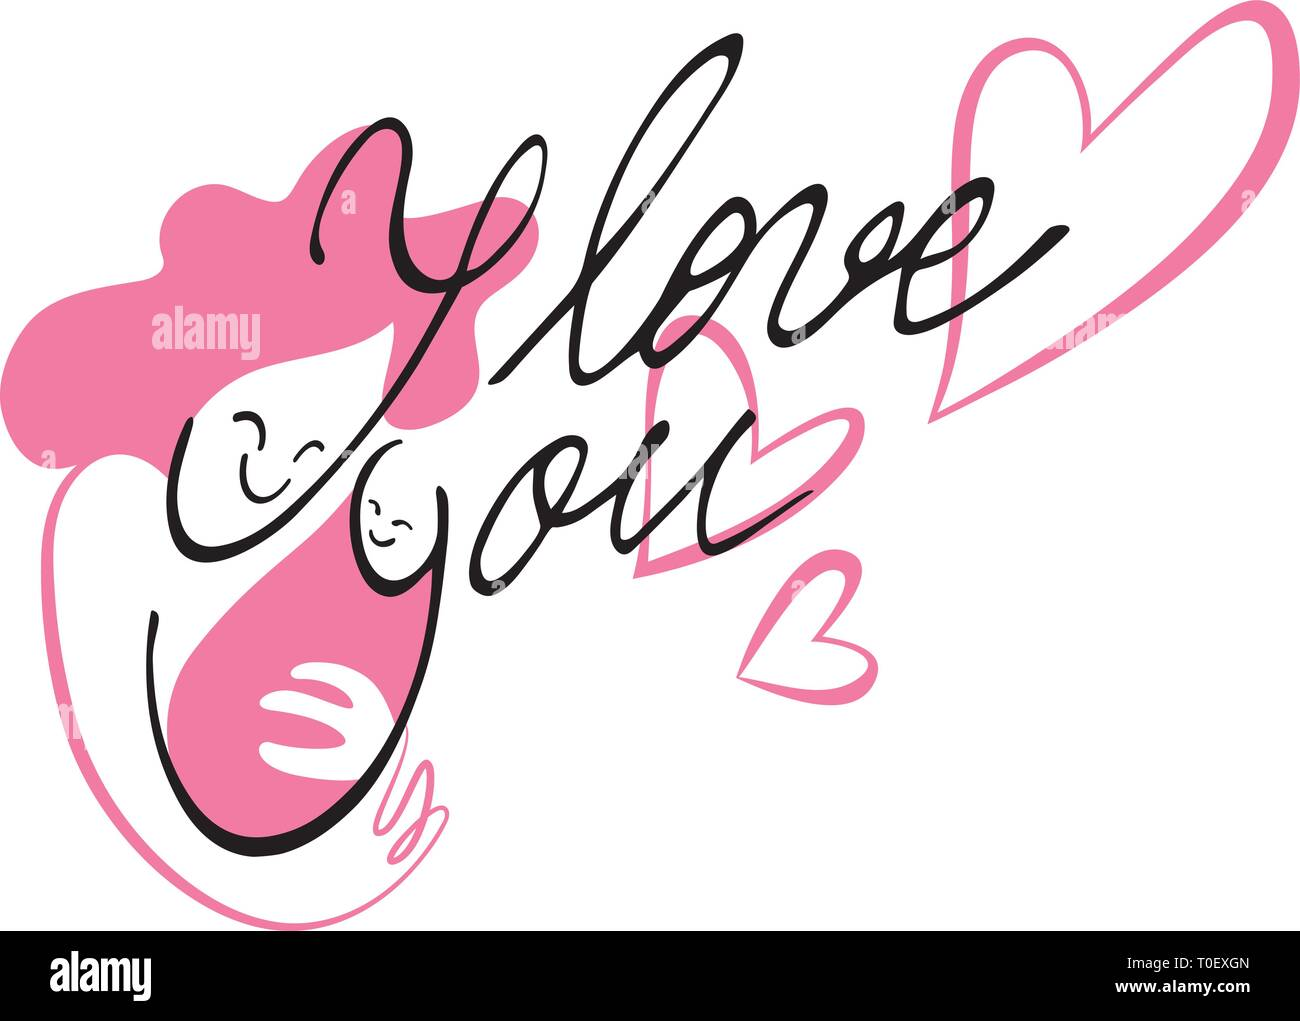 Handwriting and illustration combined into one cute layout. - Stock Vector